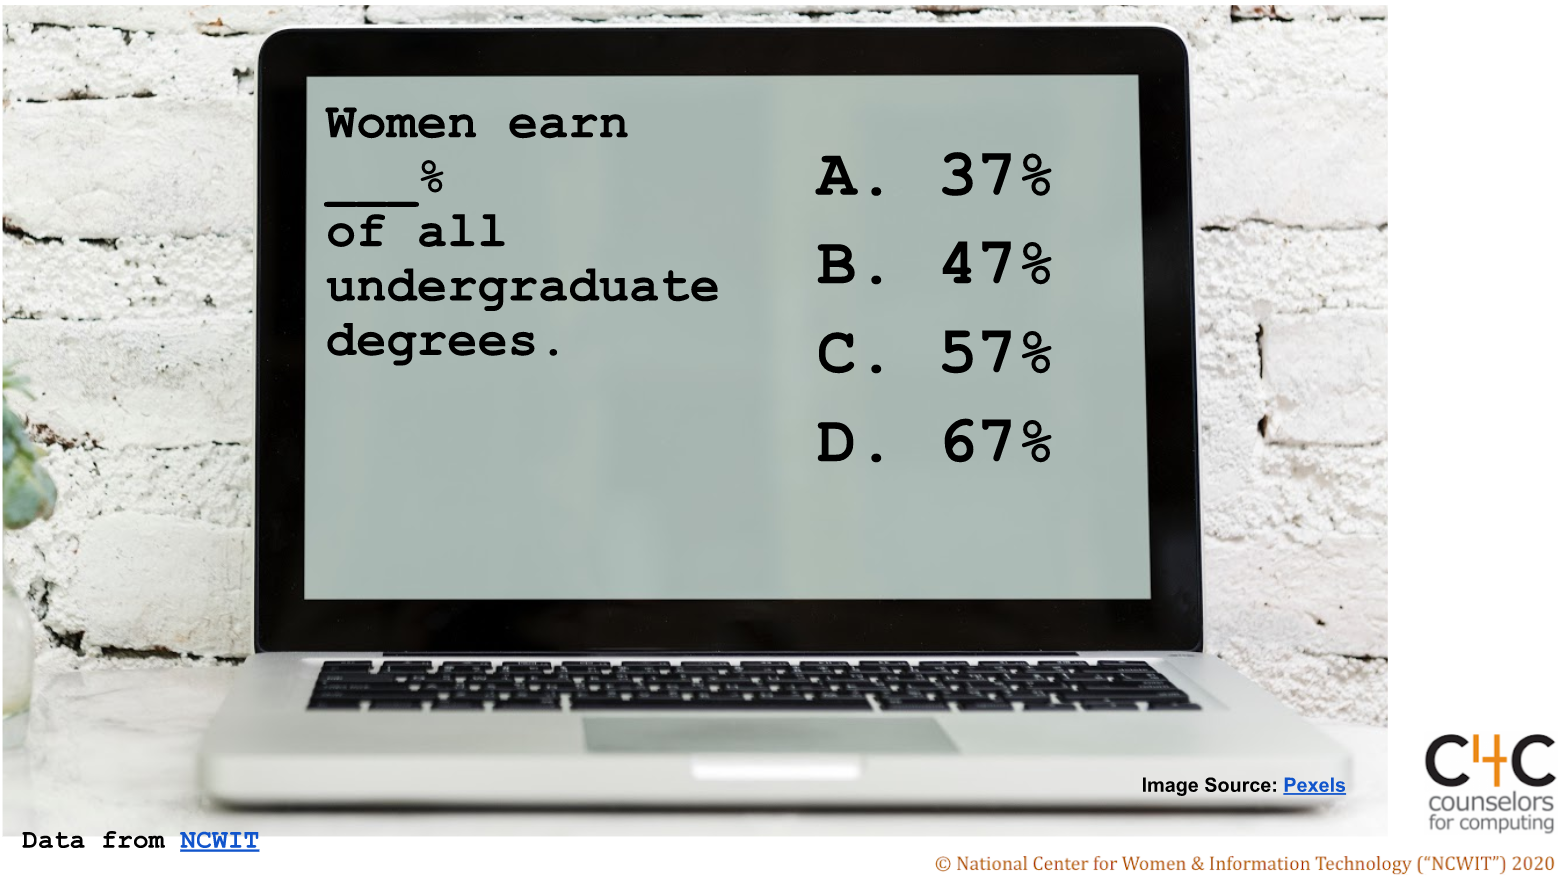 Women earn _% of all undergraduate degrees.